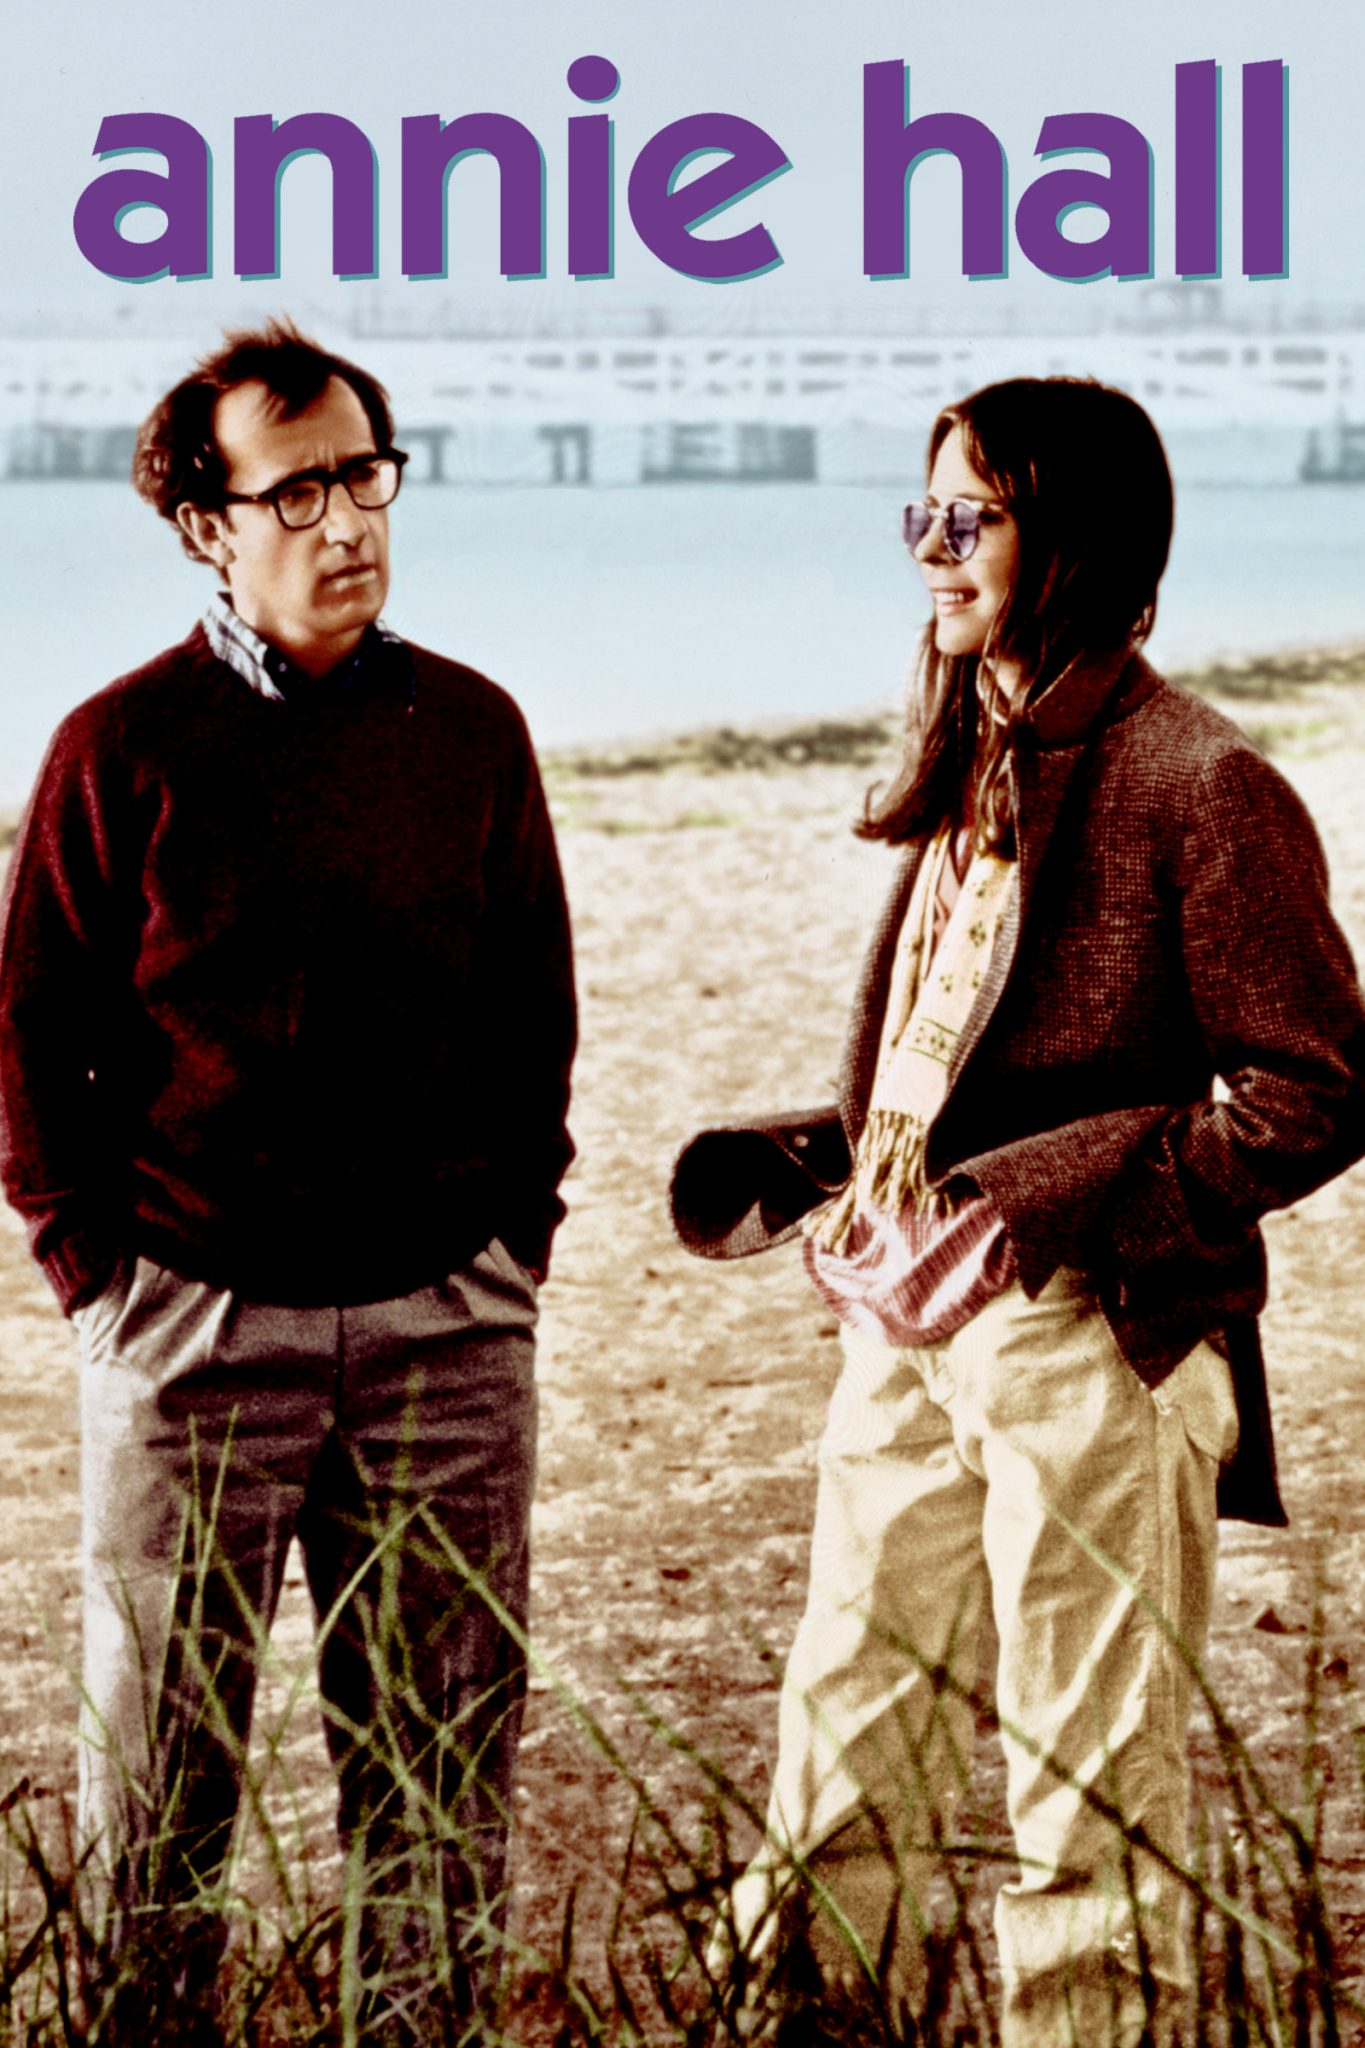 annie-hall poster